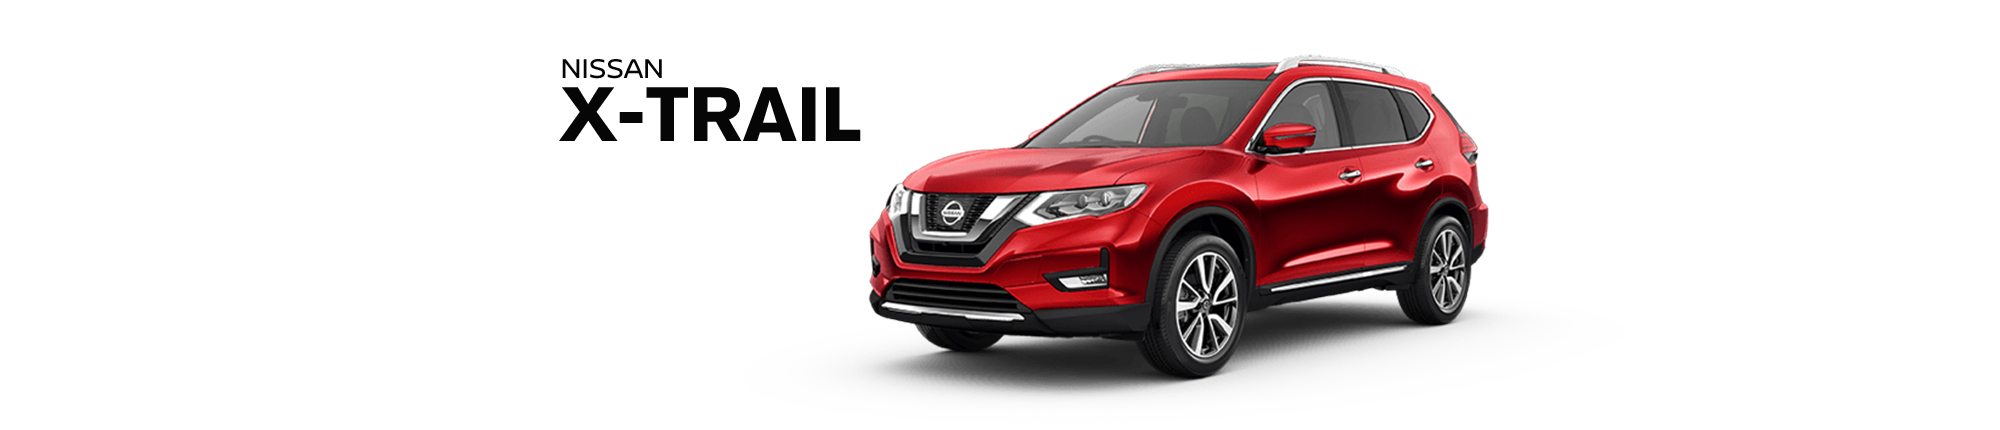 All-New X-Trail Banner